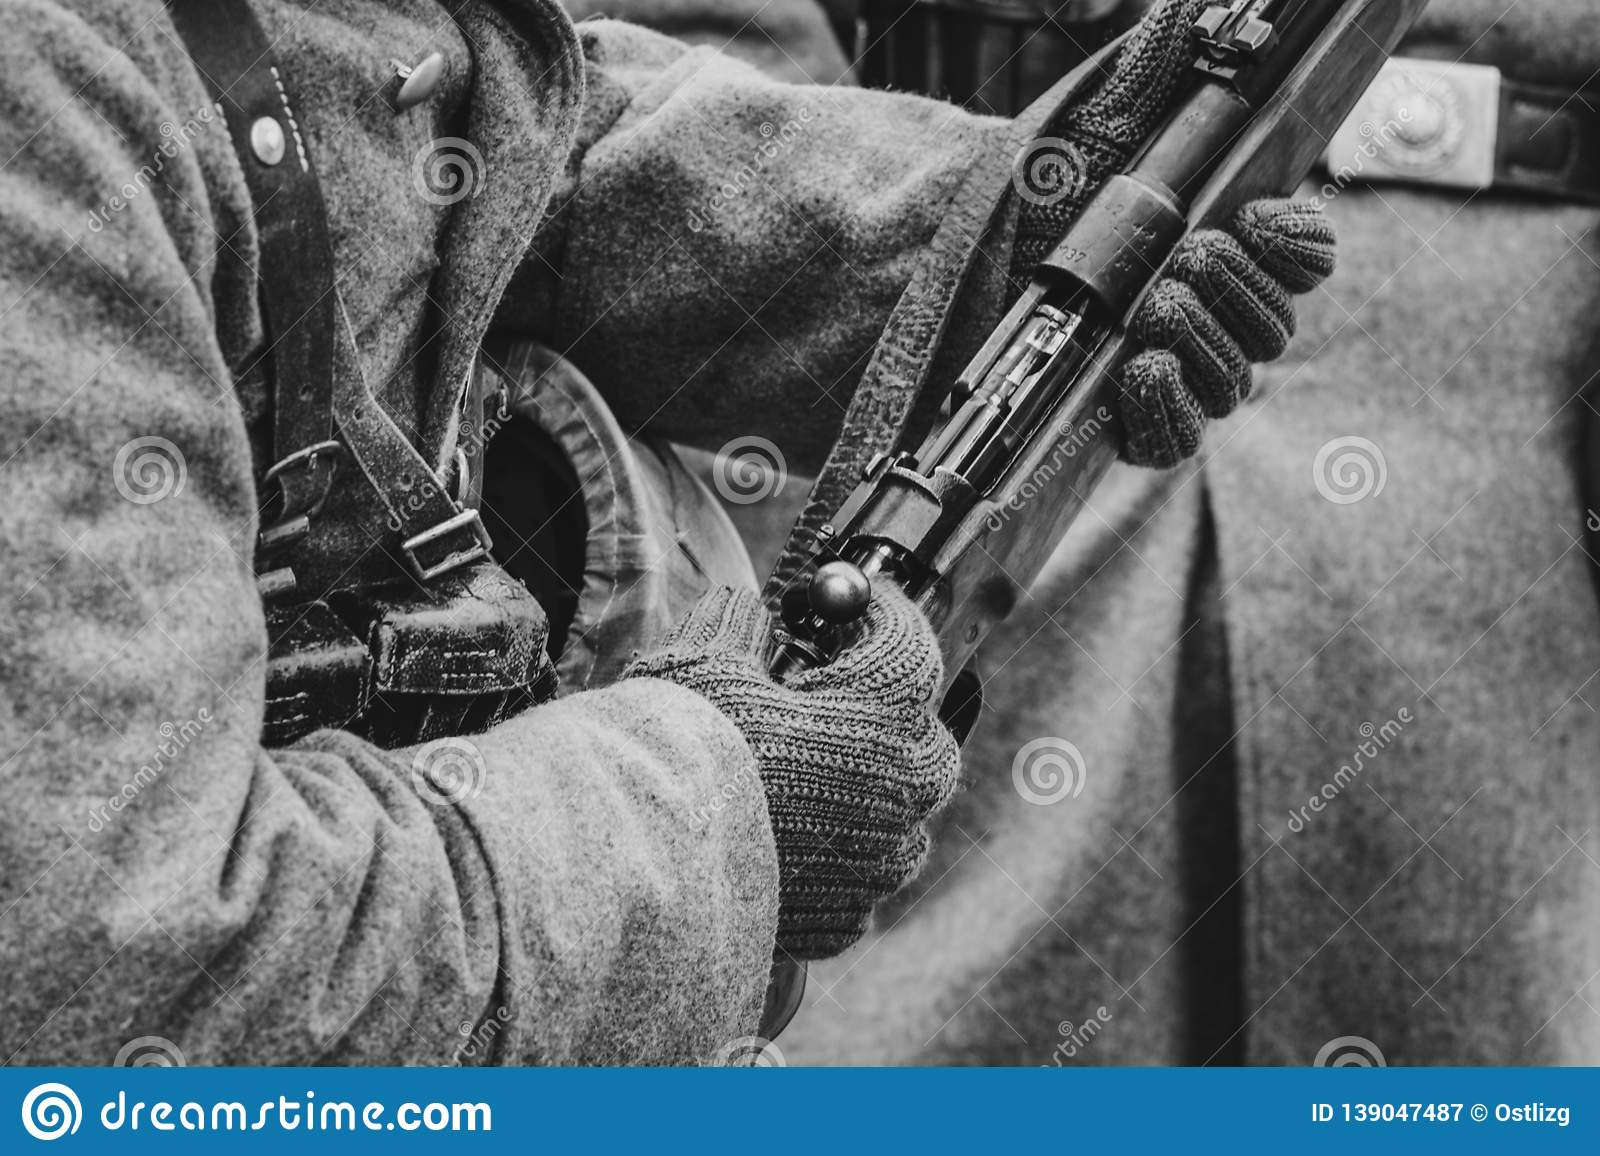 Mauser rifle in the hands of a German soldier. World War II